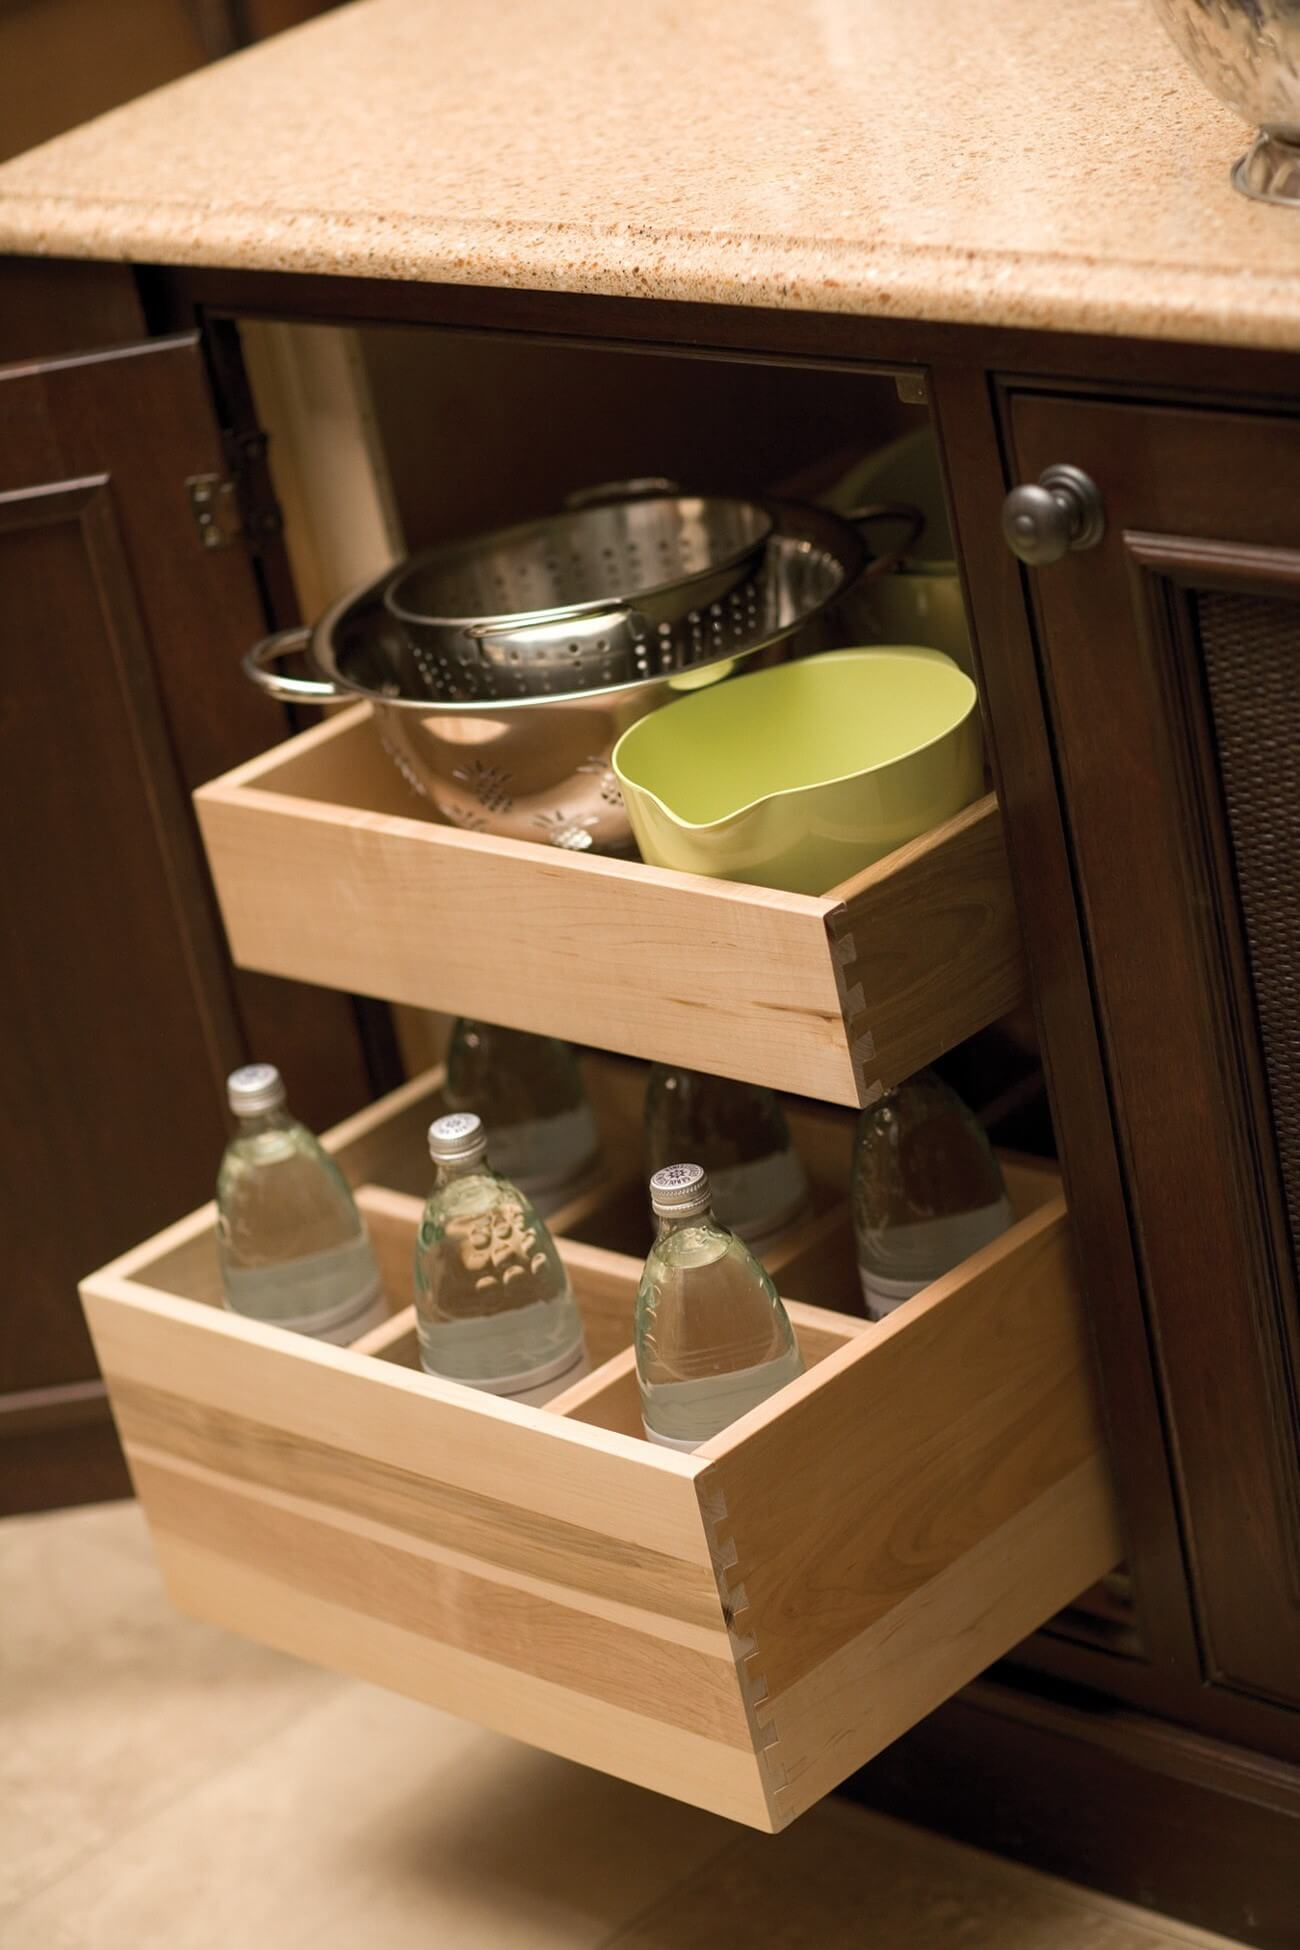 Roll-Out Bottle Rack by Dura Supreme Cabinetry with a Roll-out shelf above.